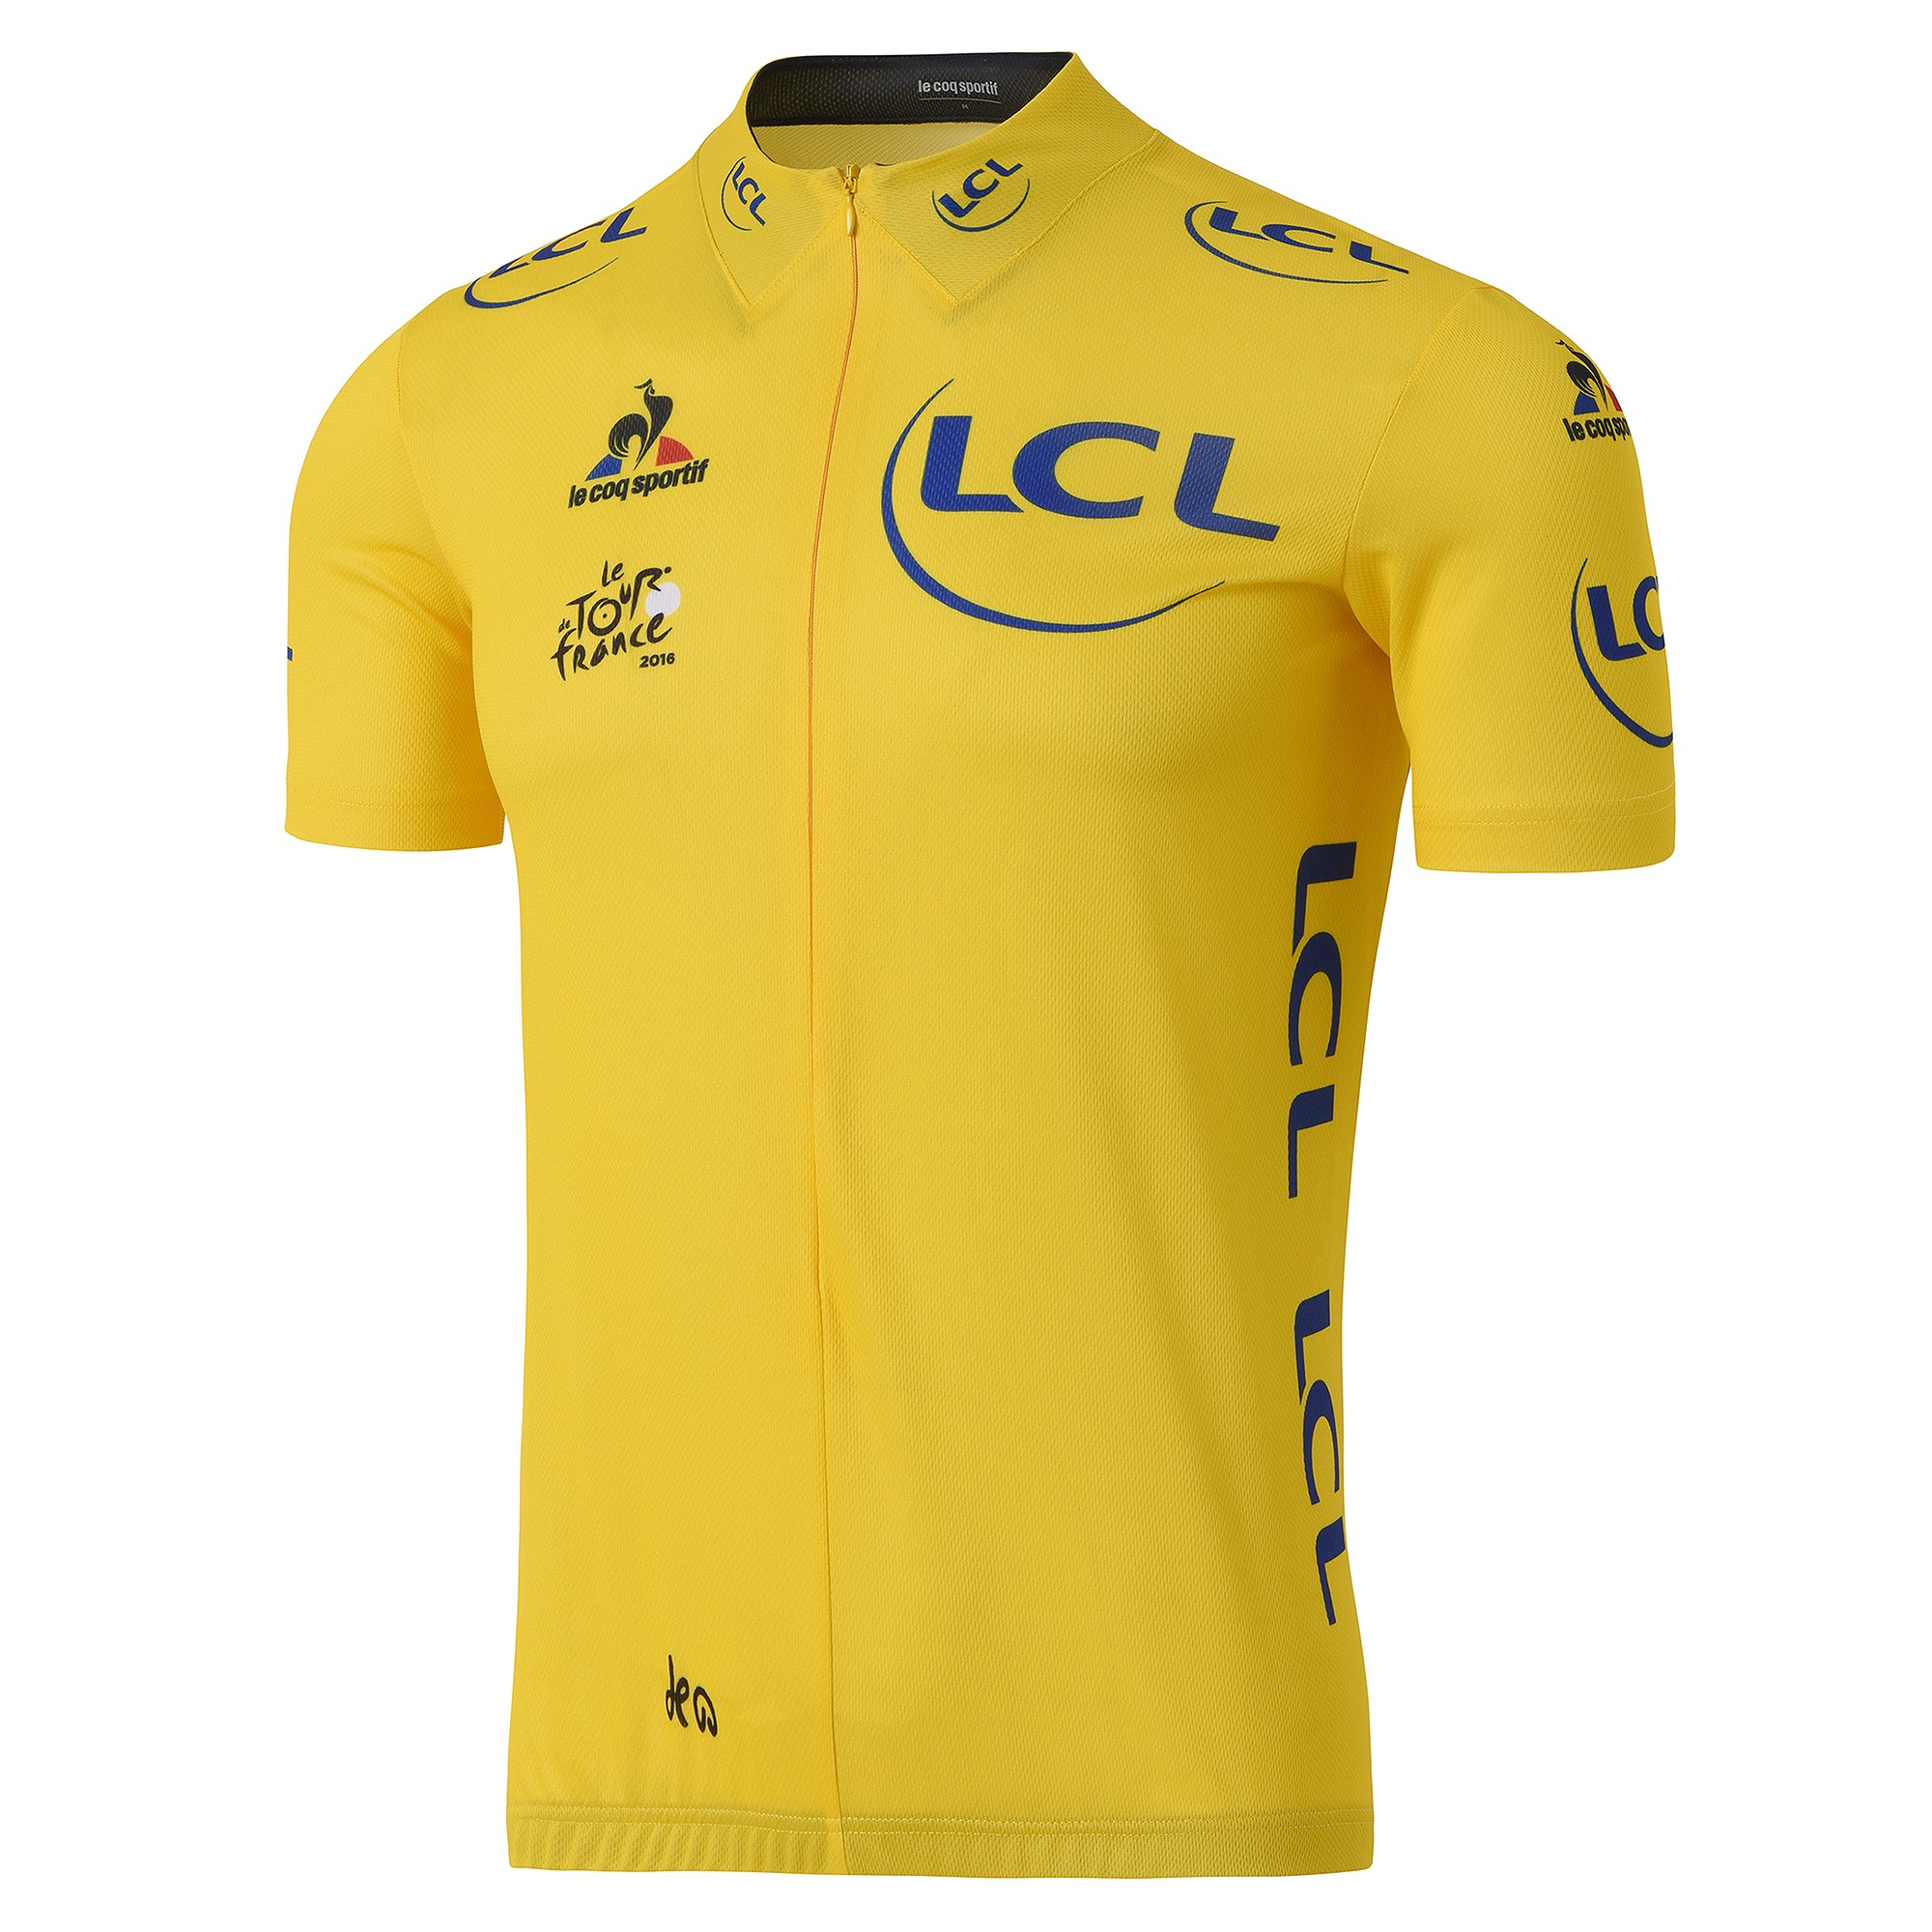 2016 Tour De France General Classification Yellow Cycling ...